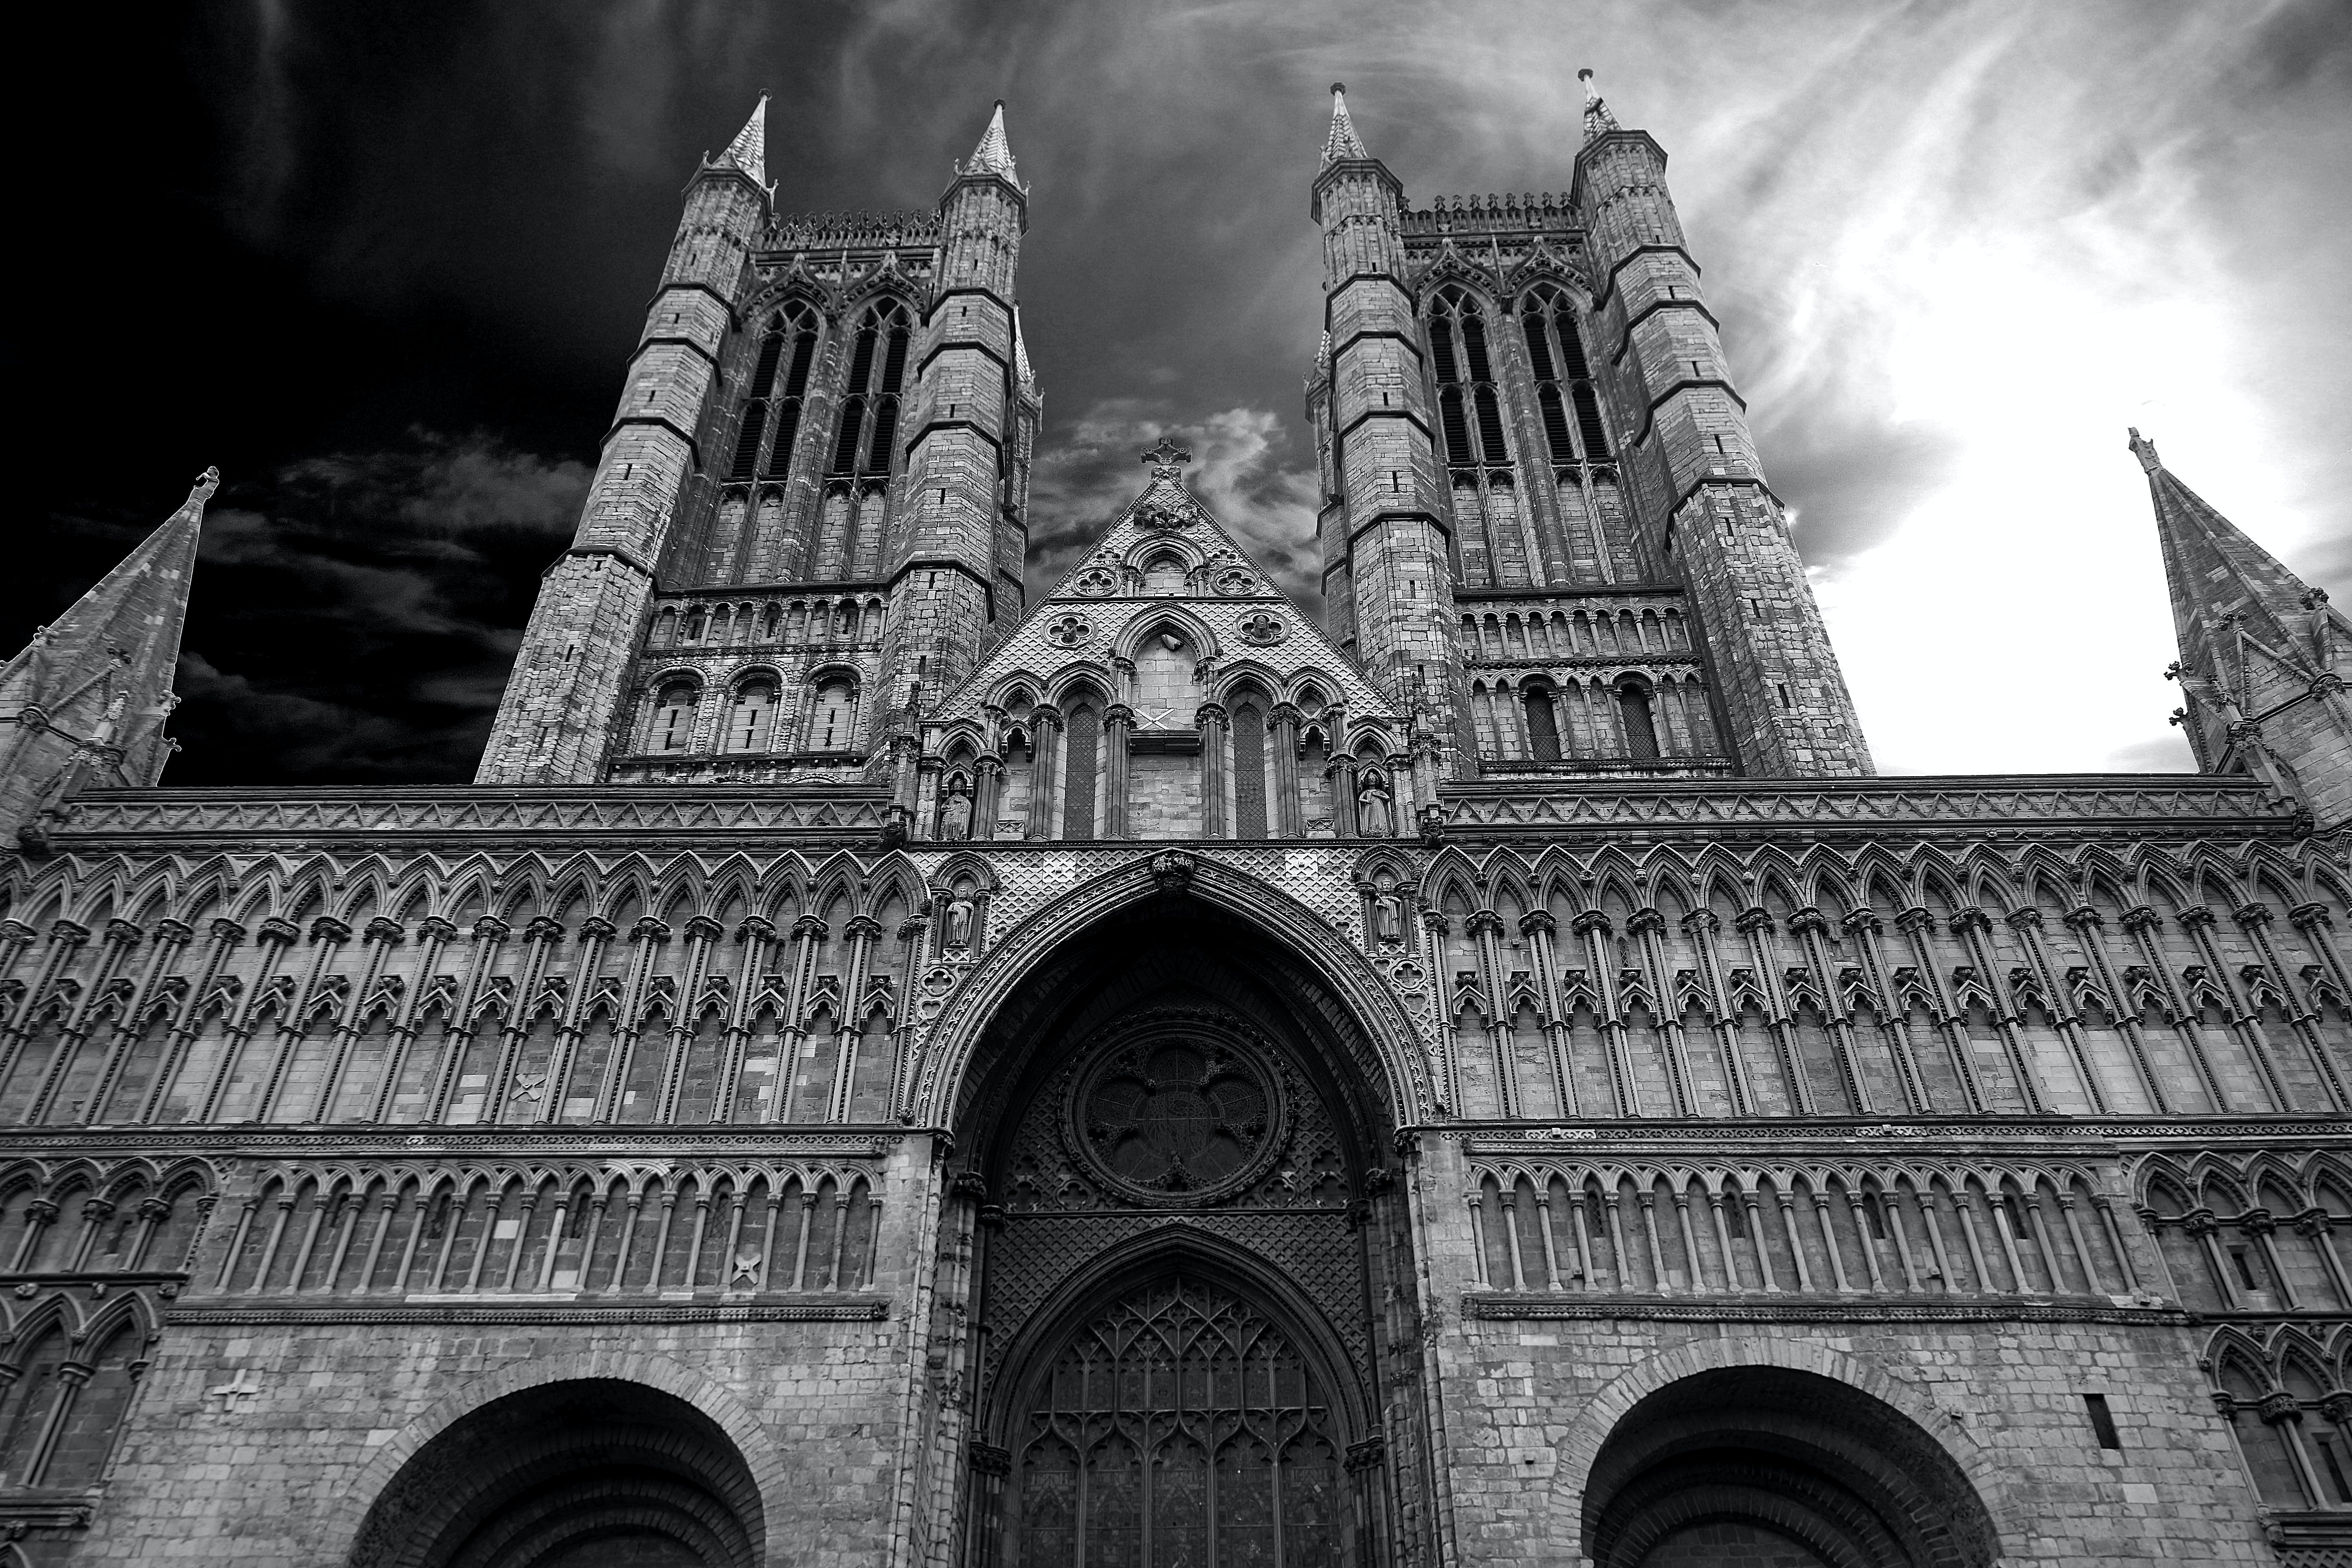 Grayscale Low Angle View of Cathedral